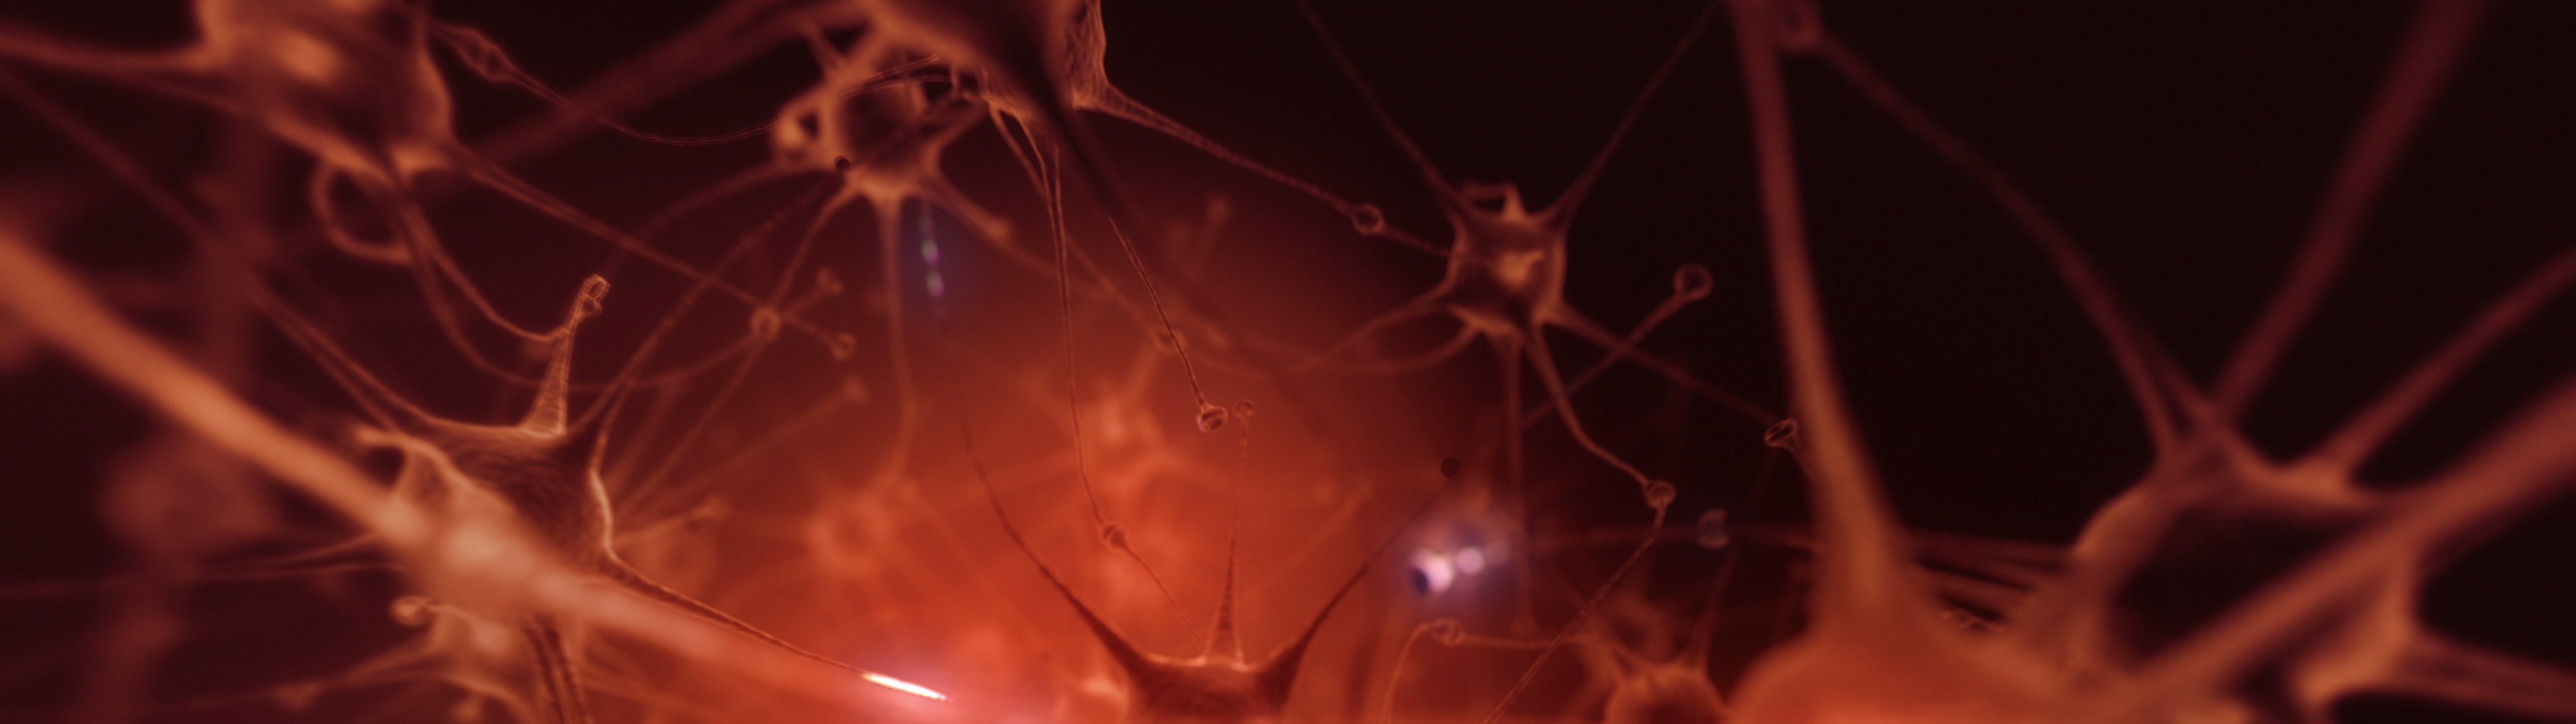 Neurons | Flight through human neural network. DOF  - ID:22834